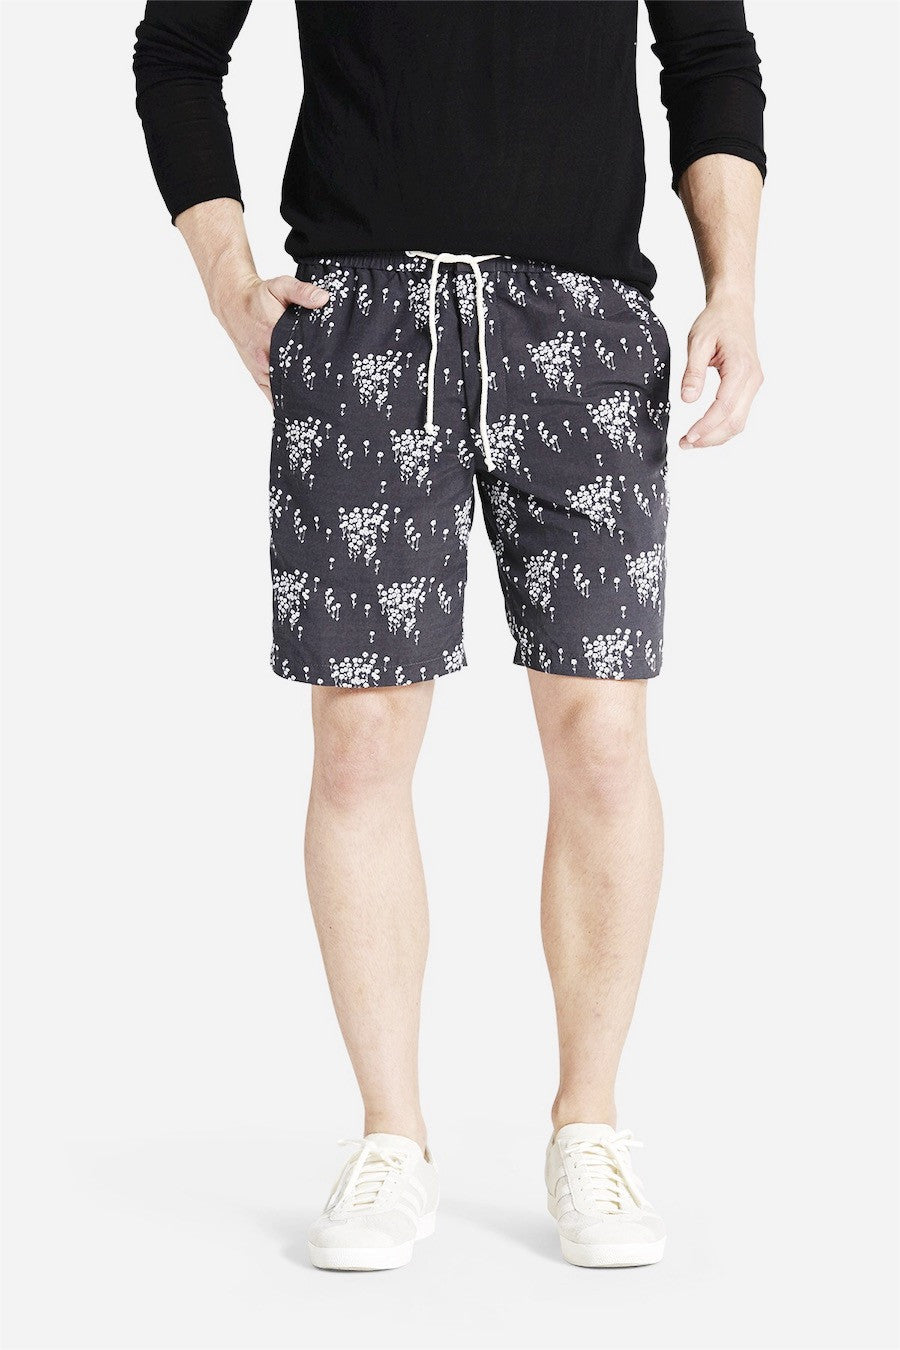 Life after Denim - Oxeye Board Short in Dark Grey